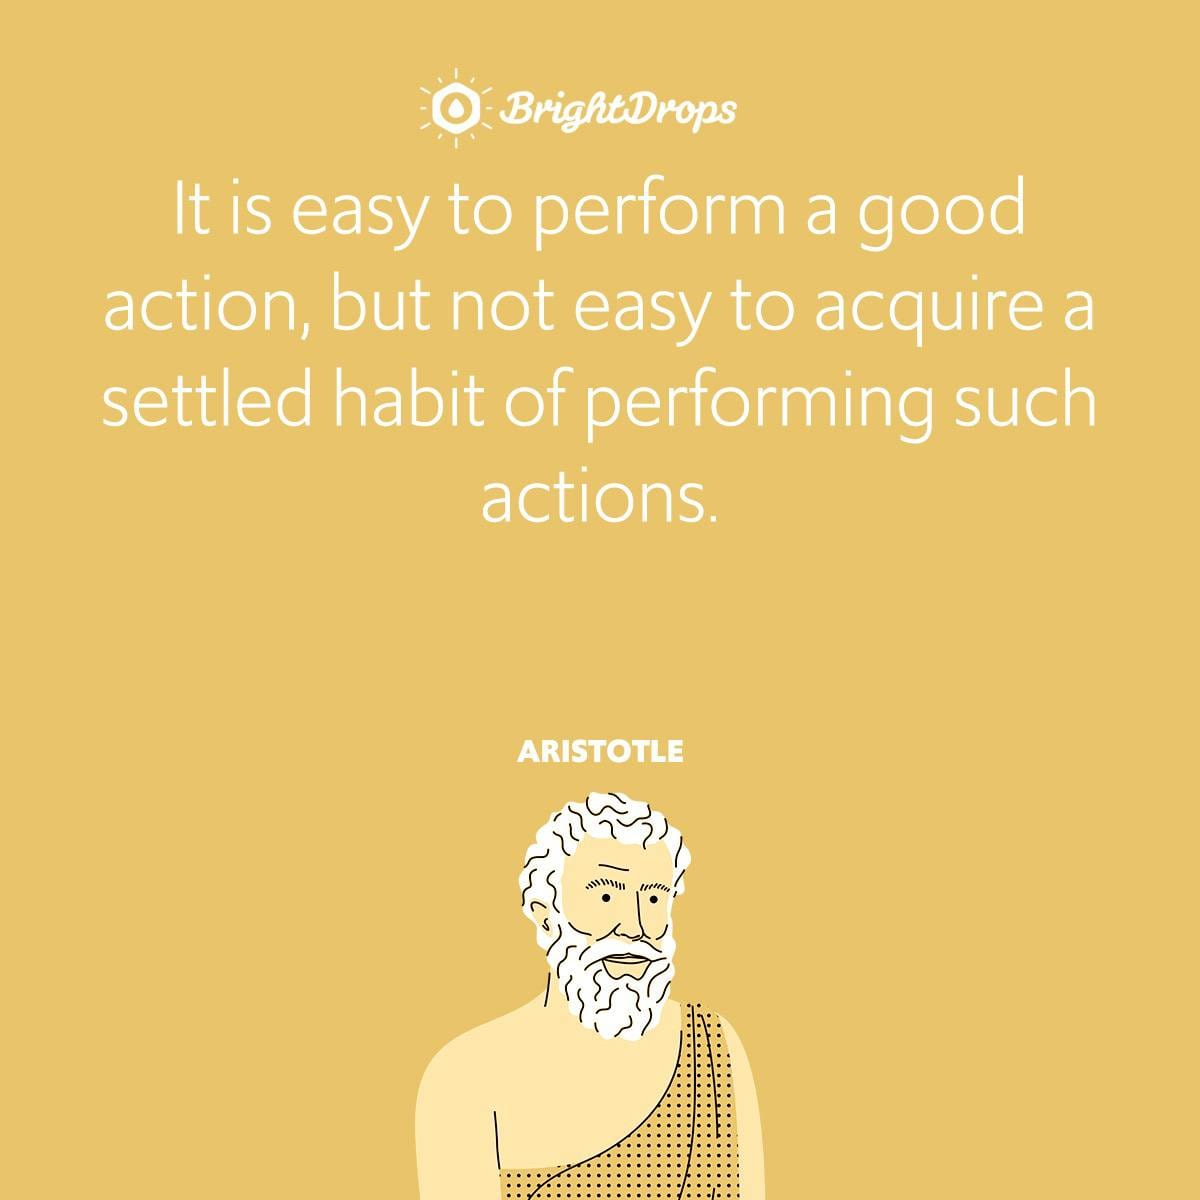 It is easy to perform a good action, but not easy to acquire a settled habit of performing such actions.